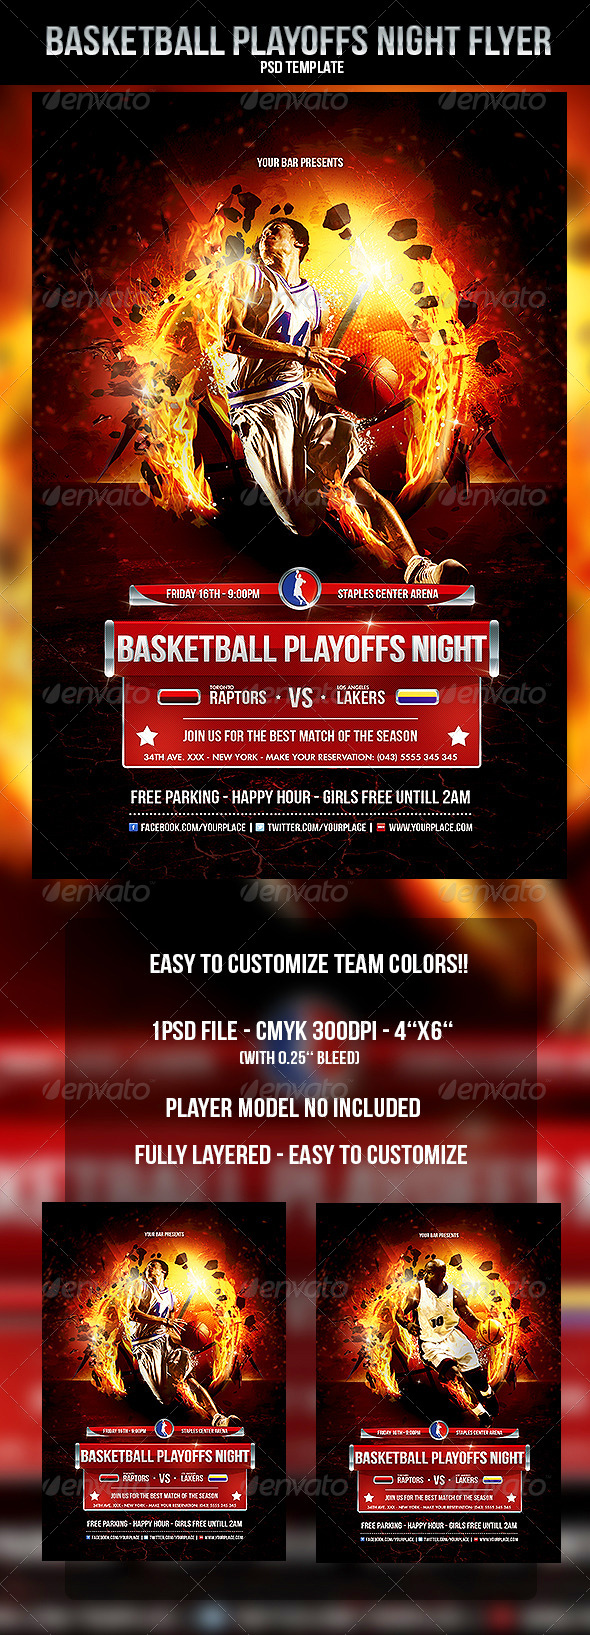 PSD Sporting Event Flyer Templates from GraphicRiver (Page 11)